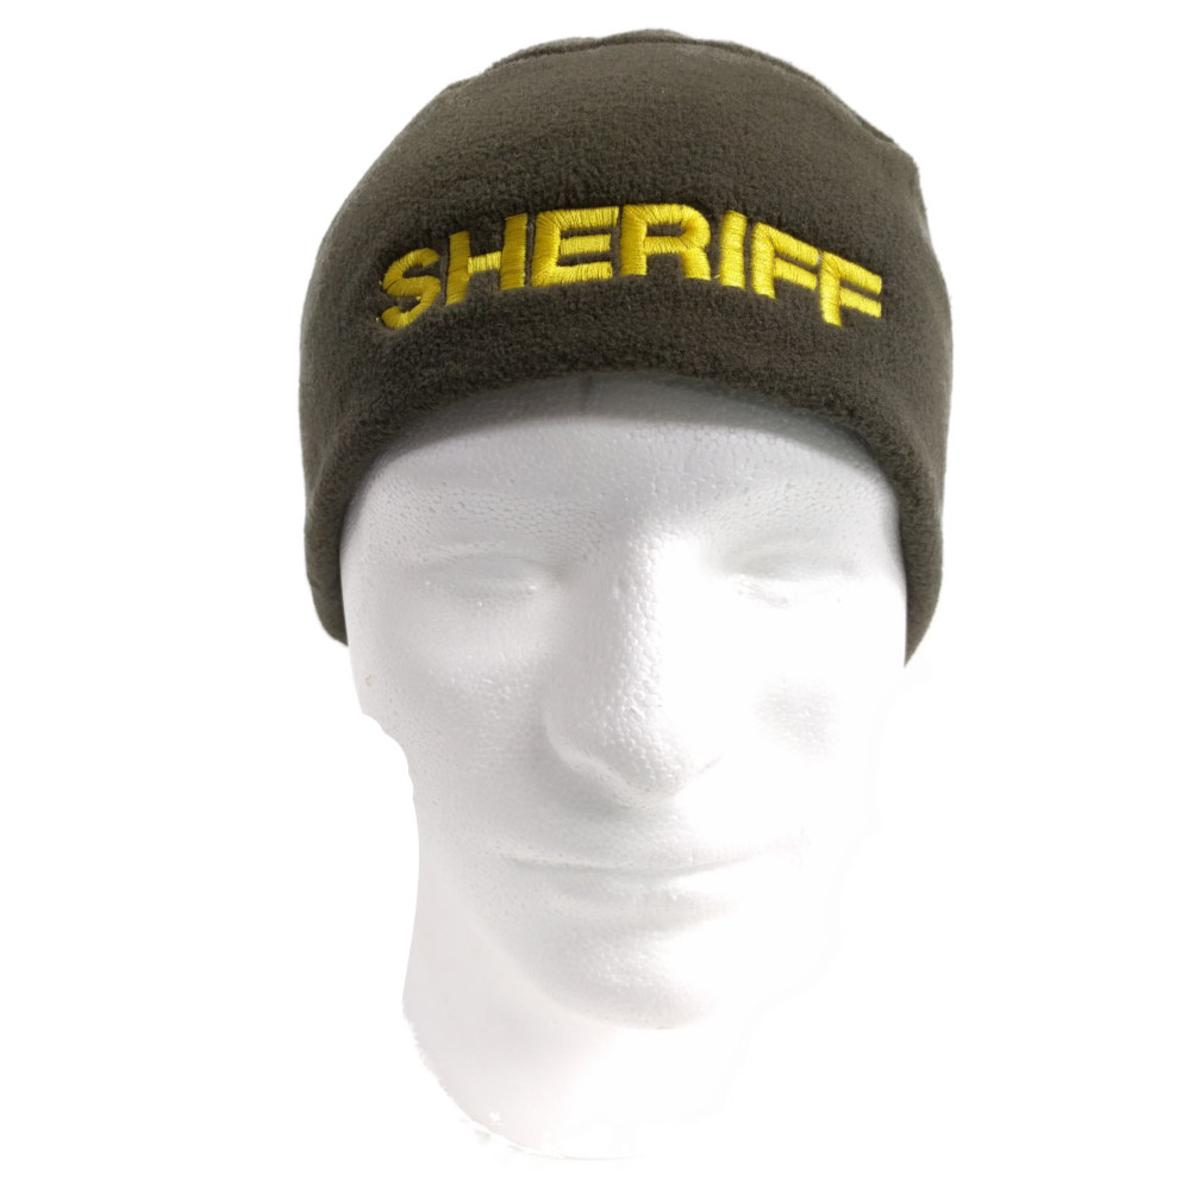 5c91557d9 Details about Polar Fleece Beenie or Skull Cap with Police Embroidery